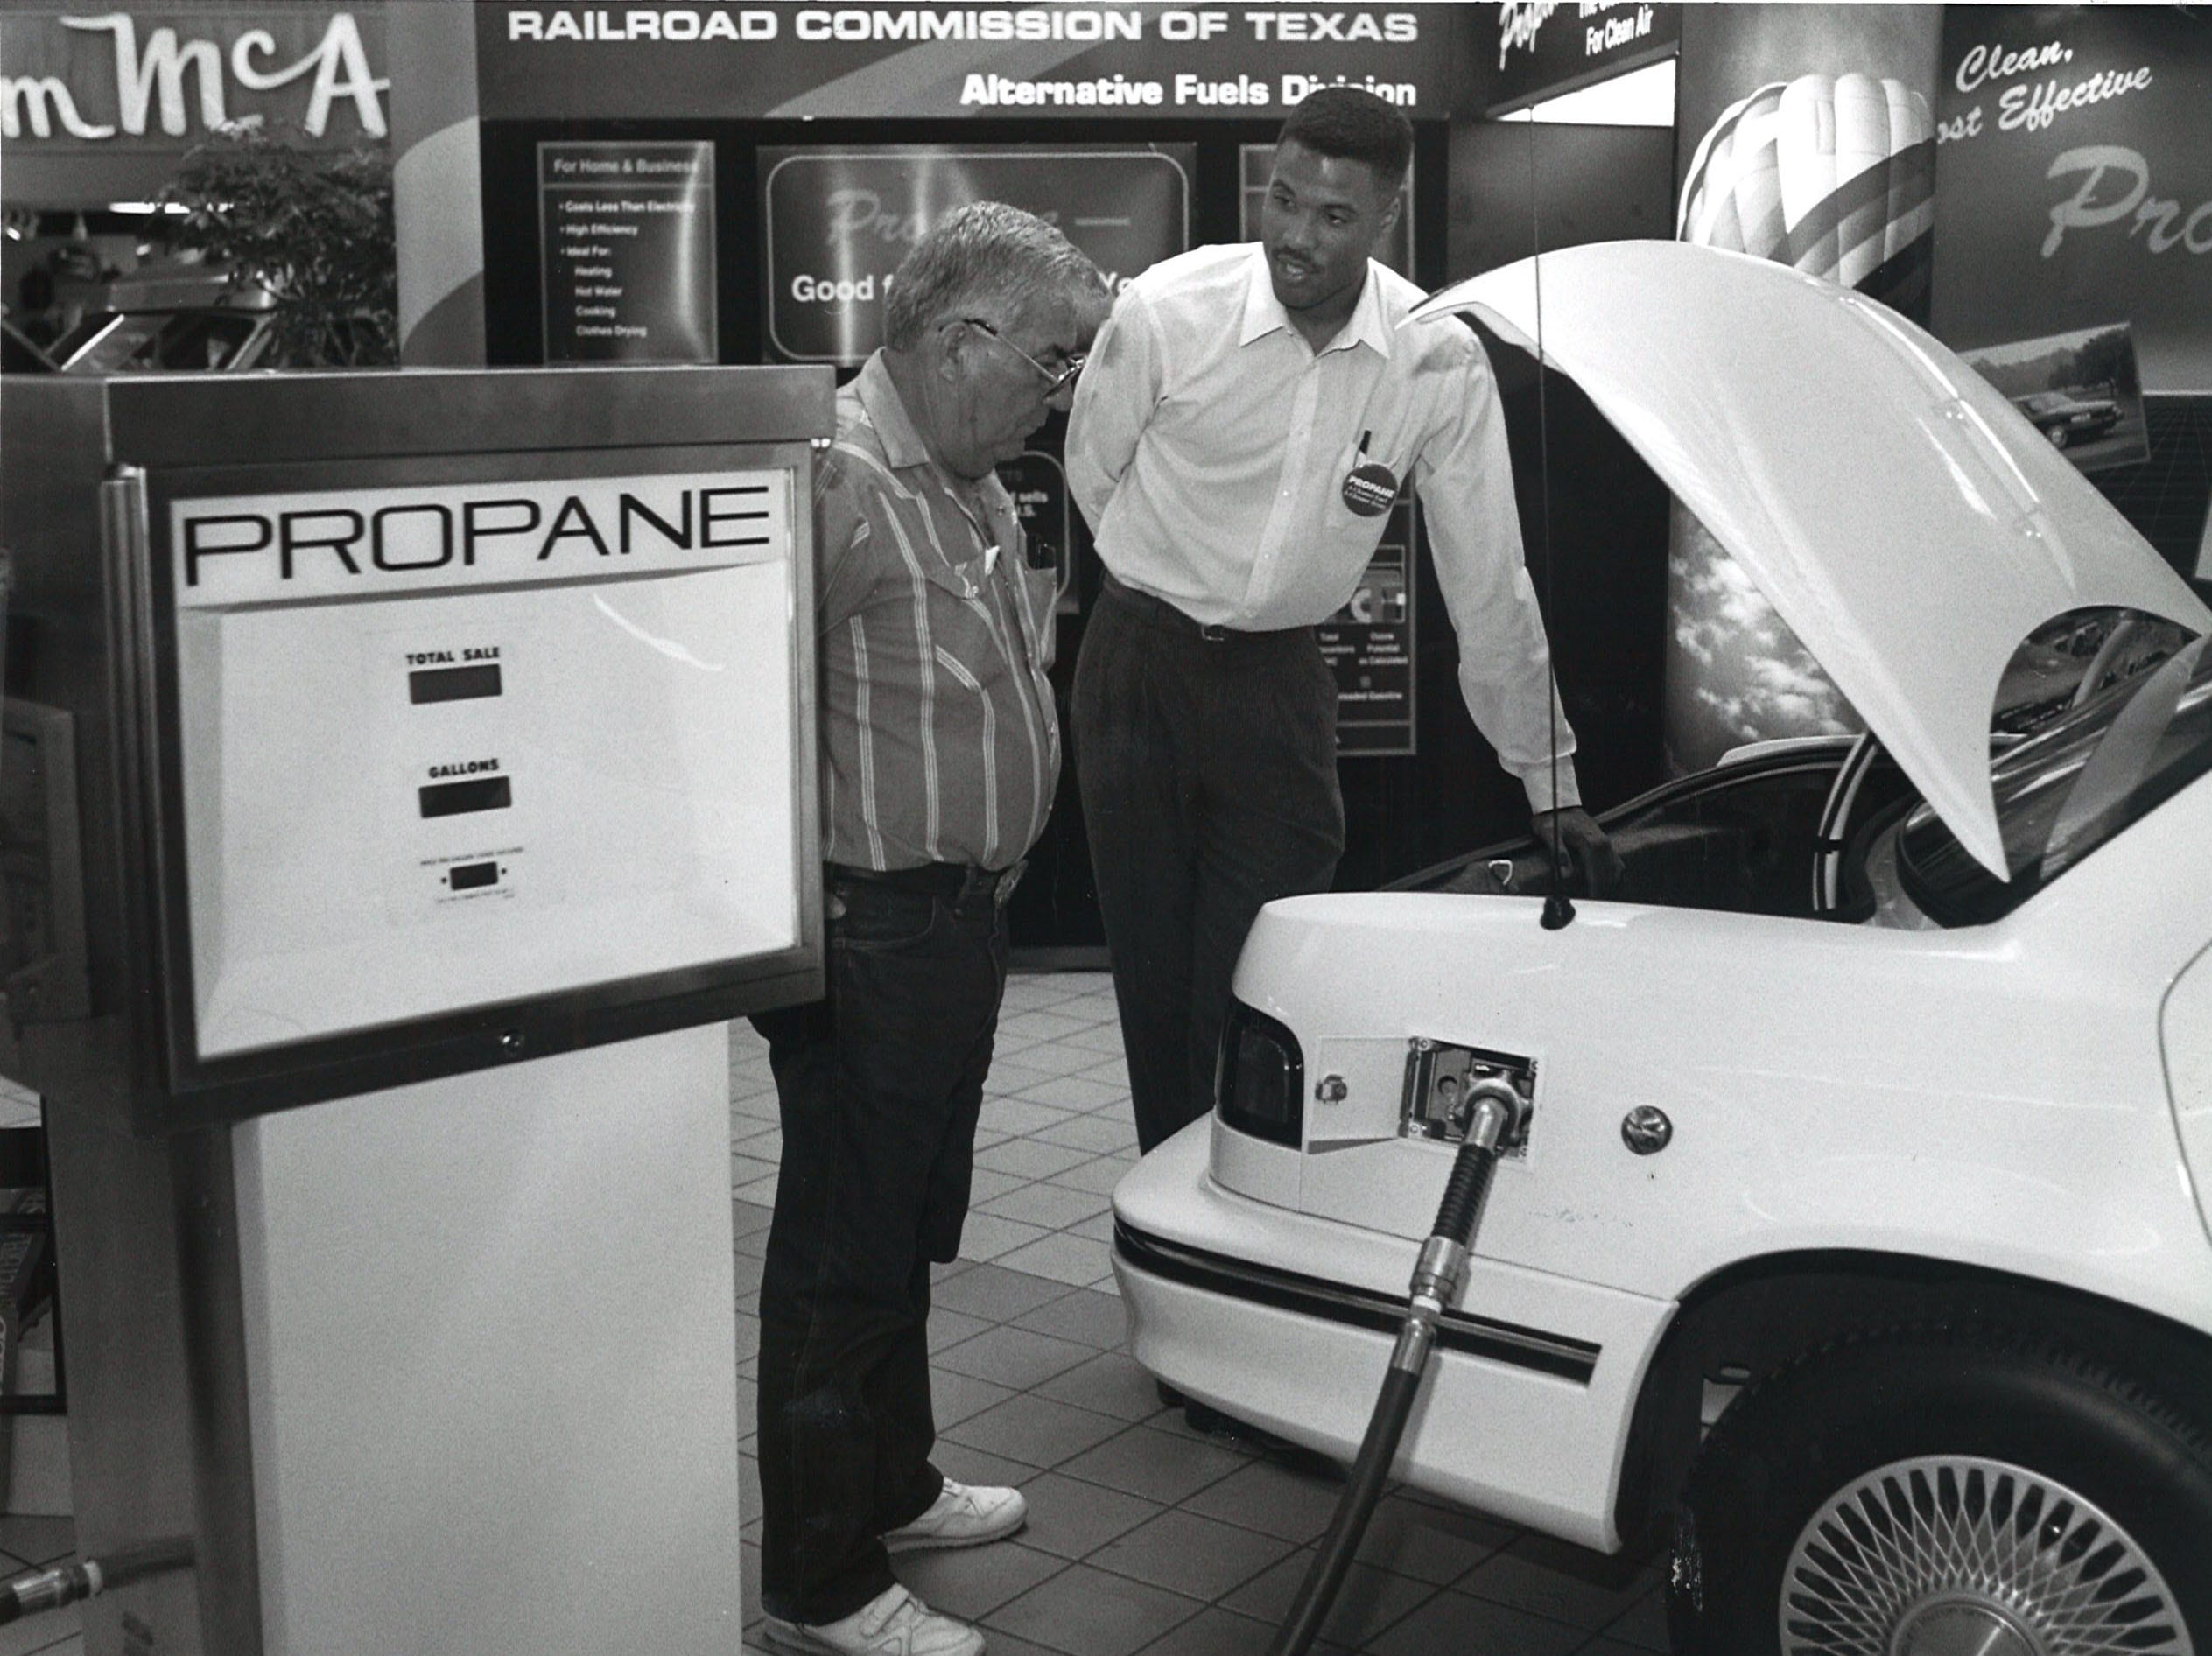 Elizardo Gutierrez (left), looks at a display vehicle in the center court of Padre Staples Mall in Corpus Christi as Clayton Whitaker of the Texas Railroad Commission explains the propane gas pump on Sept. 23, 1993.